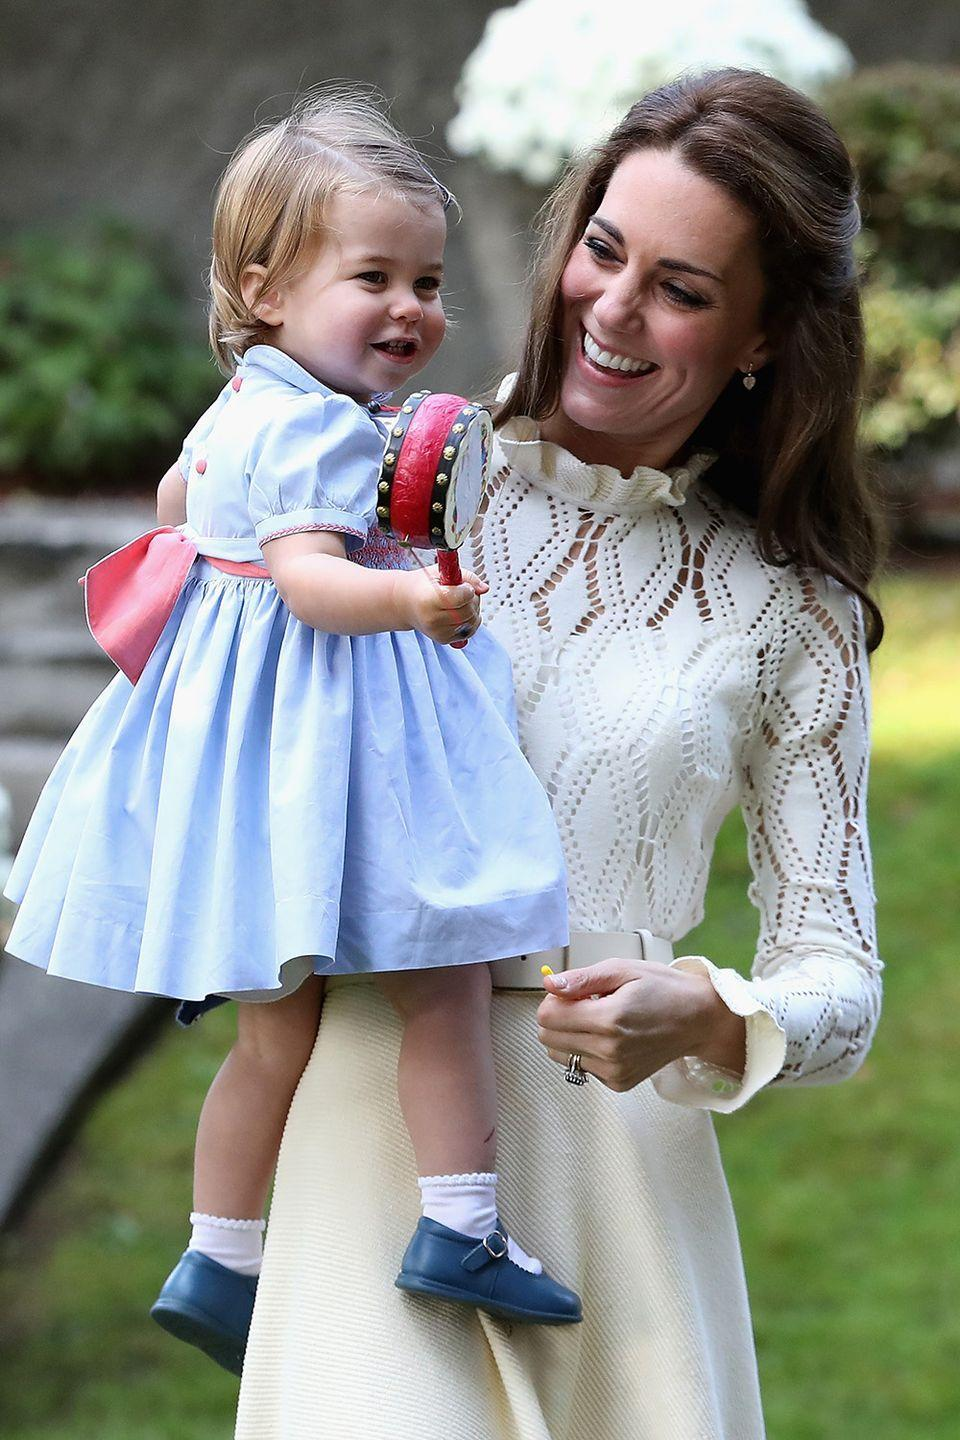 """<p>It's <a href=""""http://www.cbc.ca/news/world/princess-charlotte-s-christening-a-balance-between-private-celebration-and-public-show-1.3135809"""" rel=""""nofollow noopener"""" target=""""_blank"""" data-ylk=""""slk:reported"""" class=""""link rapid-noclick-resp"""">reported</a> Kate Middleton had three midwives accompany her during the birth of Princess Charlotte—<span class=""""redactor-invisible-space"""">a</span>ll of whom were <a href=""""http://www.elle.com/culture/celebrities/news/a36635/prince-george-princess-charlotte-delivery-team/"""" rel=""""nofollow noopener"""" target=""""_blank"""" data-ylk=""""slk:sworn to secrecy"""" class=""""link rapid-noclick-resp"""">sworn to secrecy</a>. </p>"""